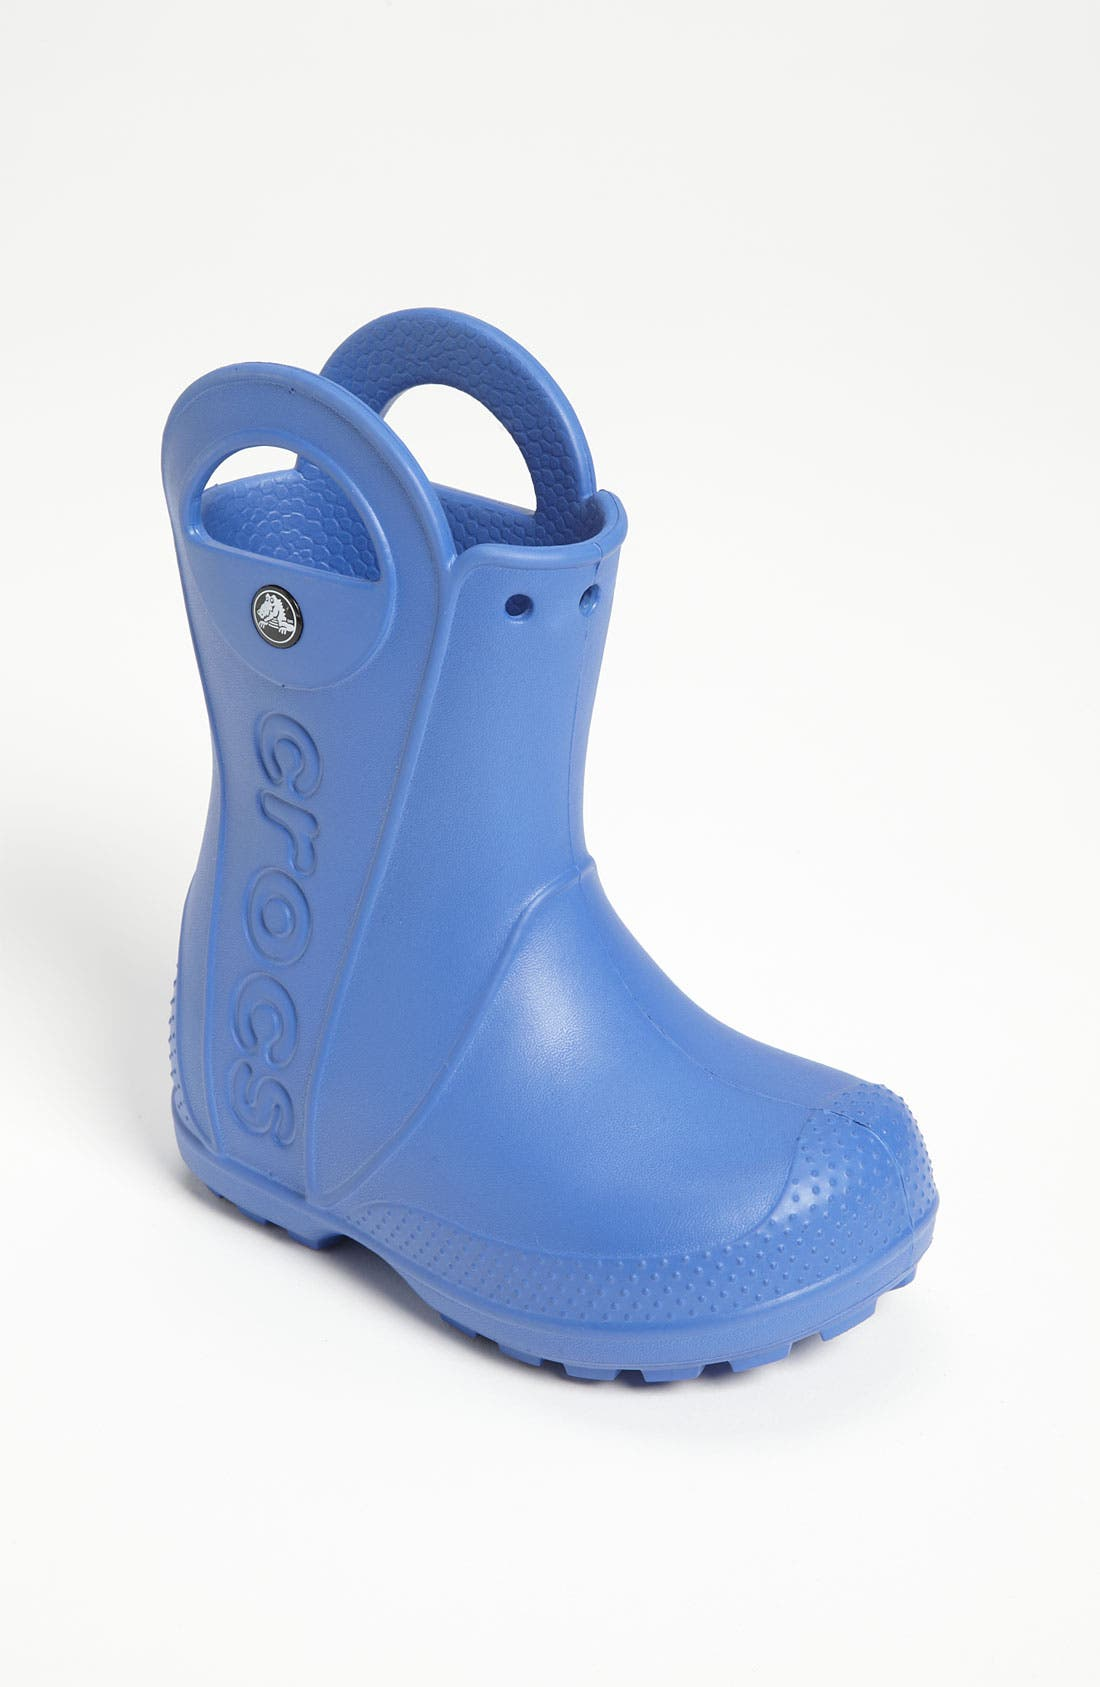 Alternate Image 1 Selected - CROCS™ 'Handle It' Rain Boot (Walker, Toddler & Little Kid)